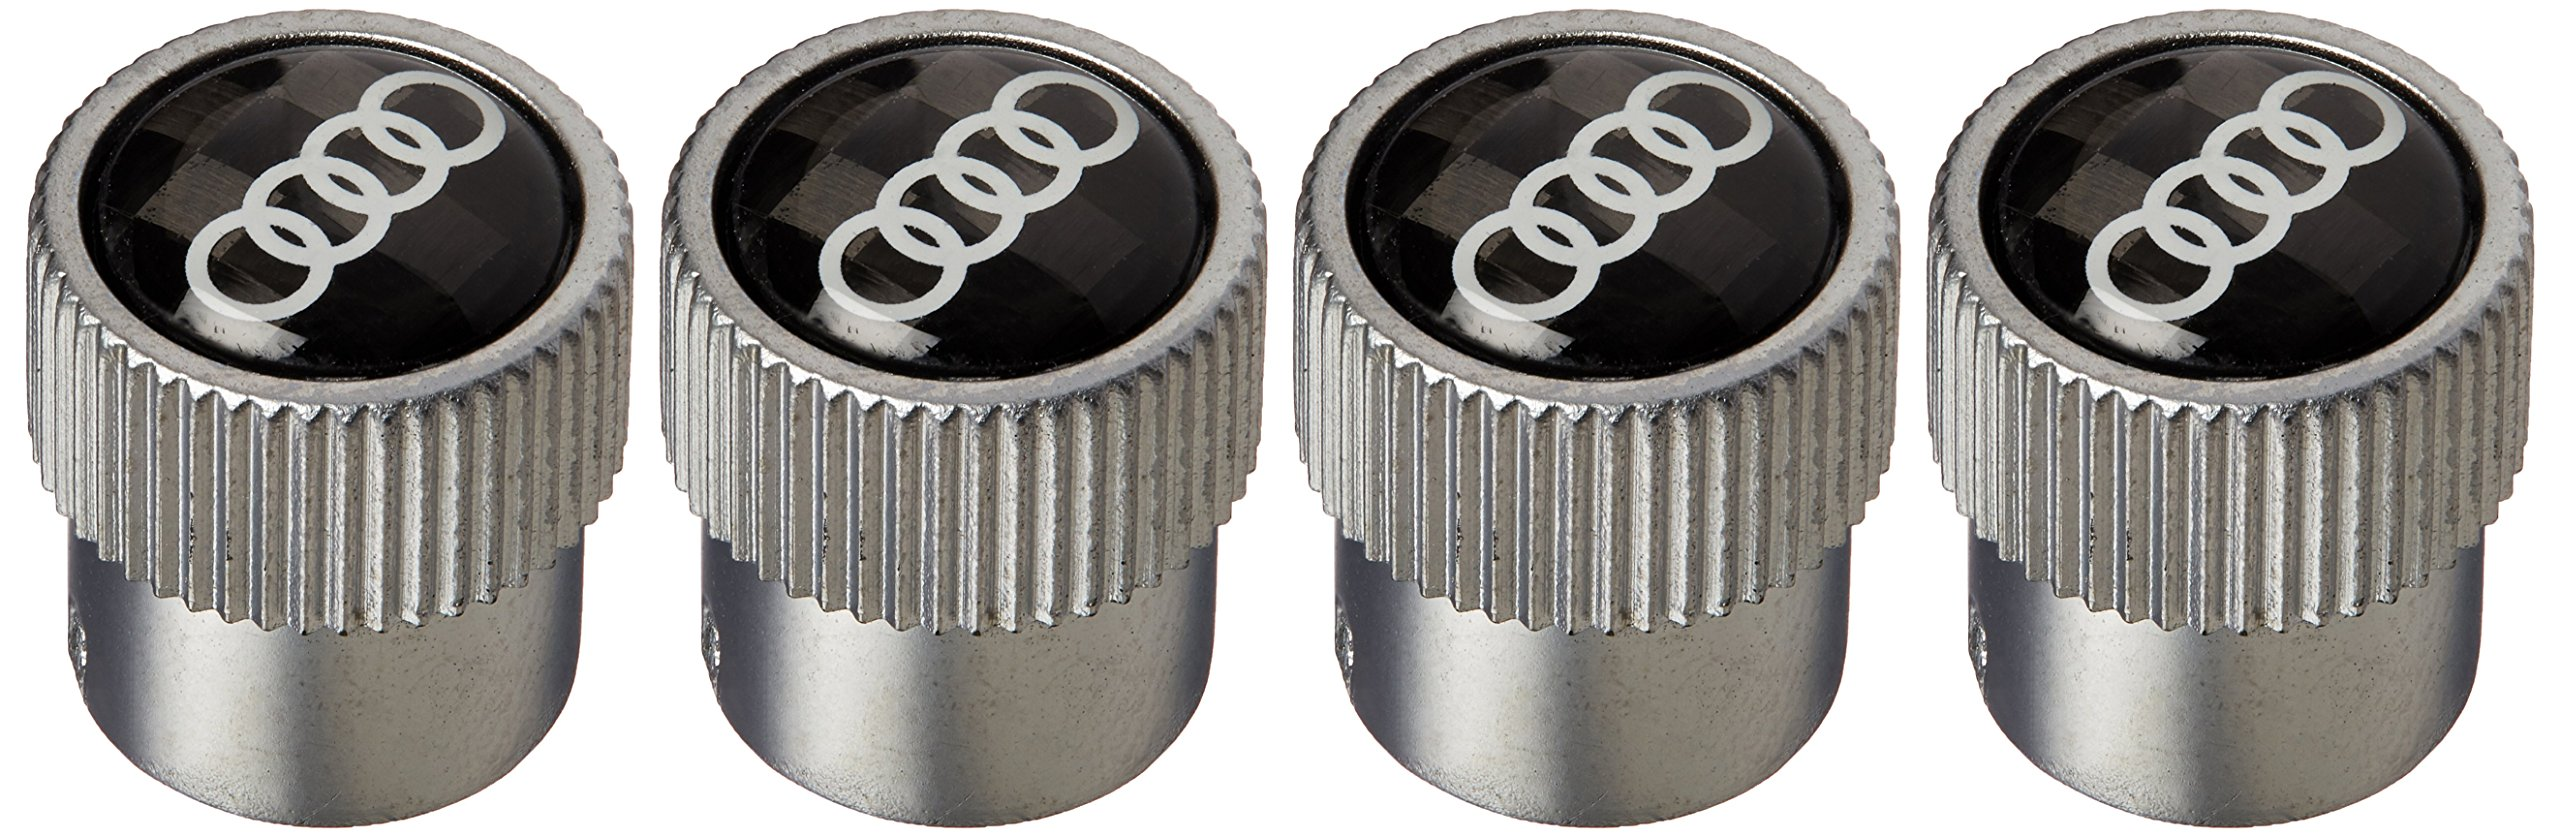 Audi New Carbon Fiber Valve Stem Caps with Rings Logo Set of 4